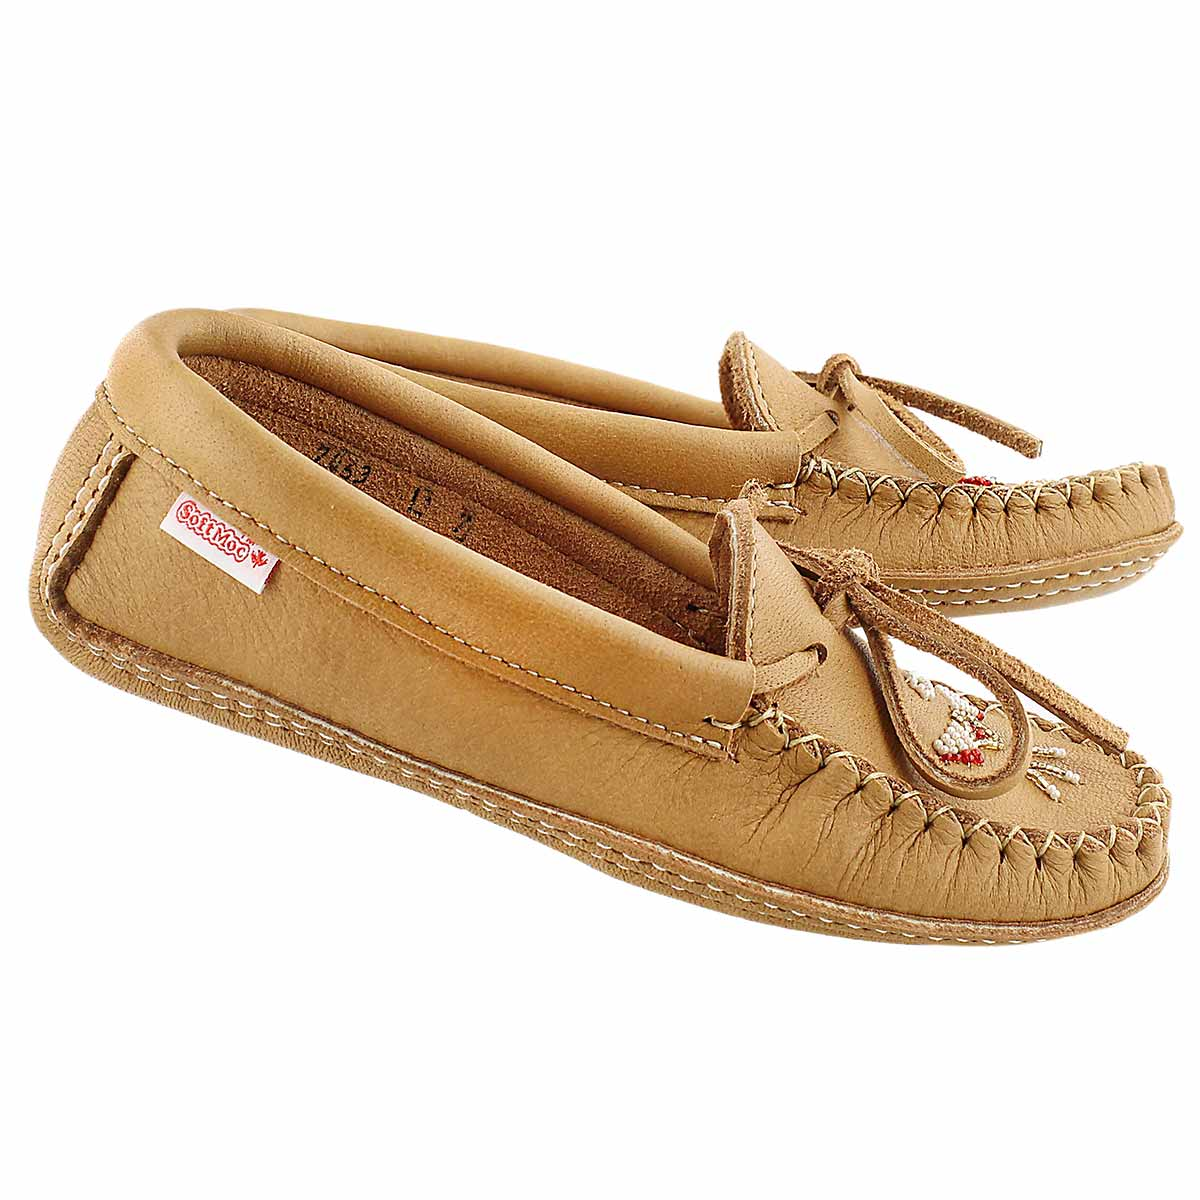 Lds tan double sole moccasin / beads